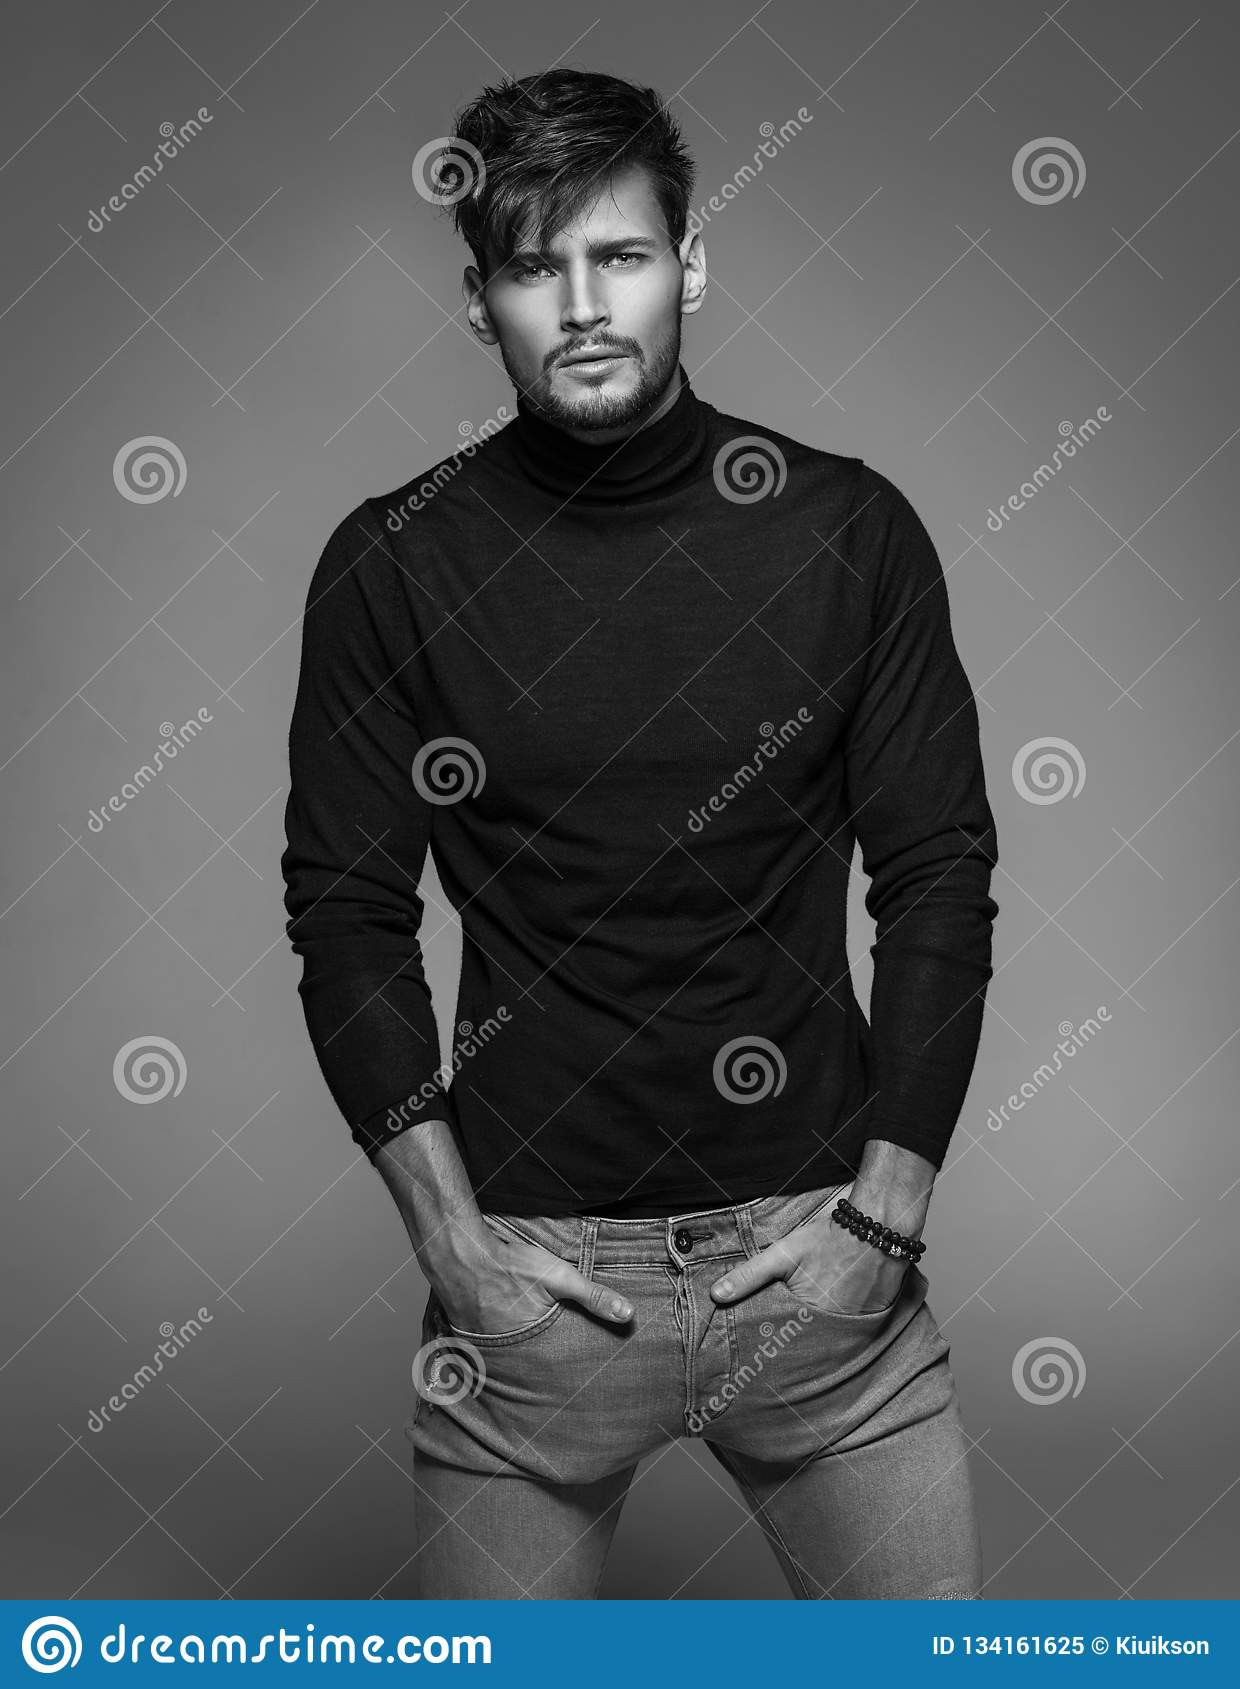 Black And White Portrait Of Handsome Model Stock Image Image Of Body Fitness 134161625